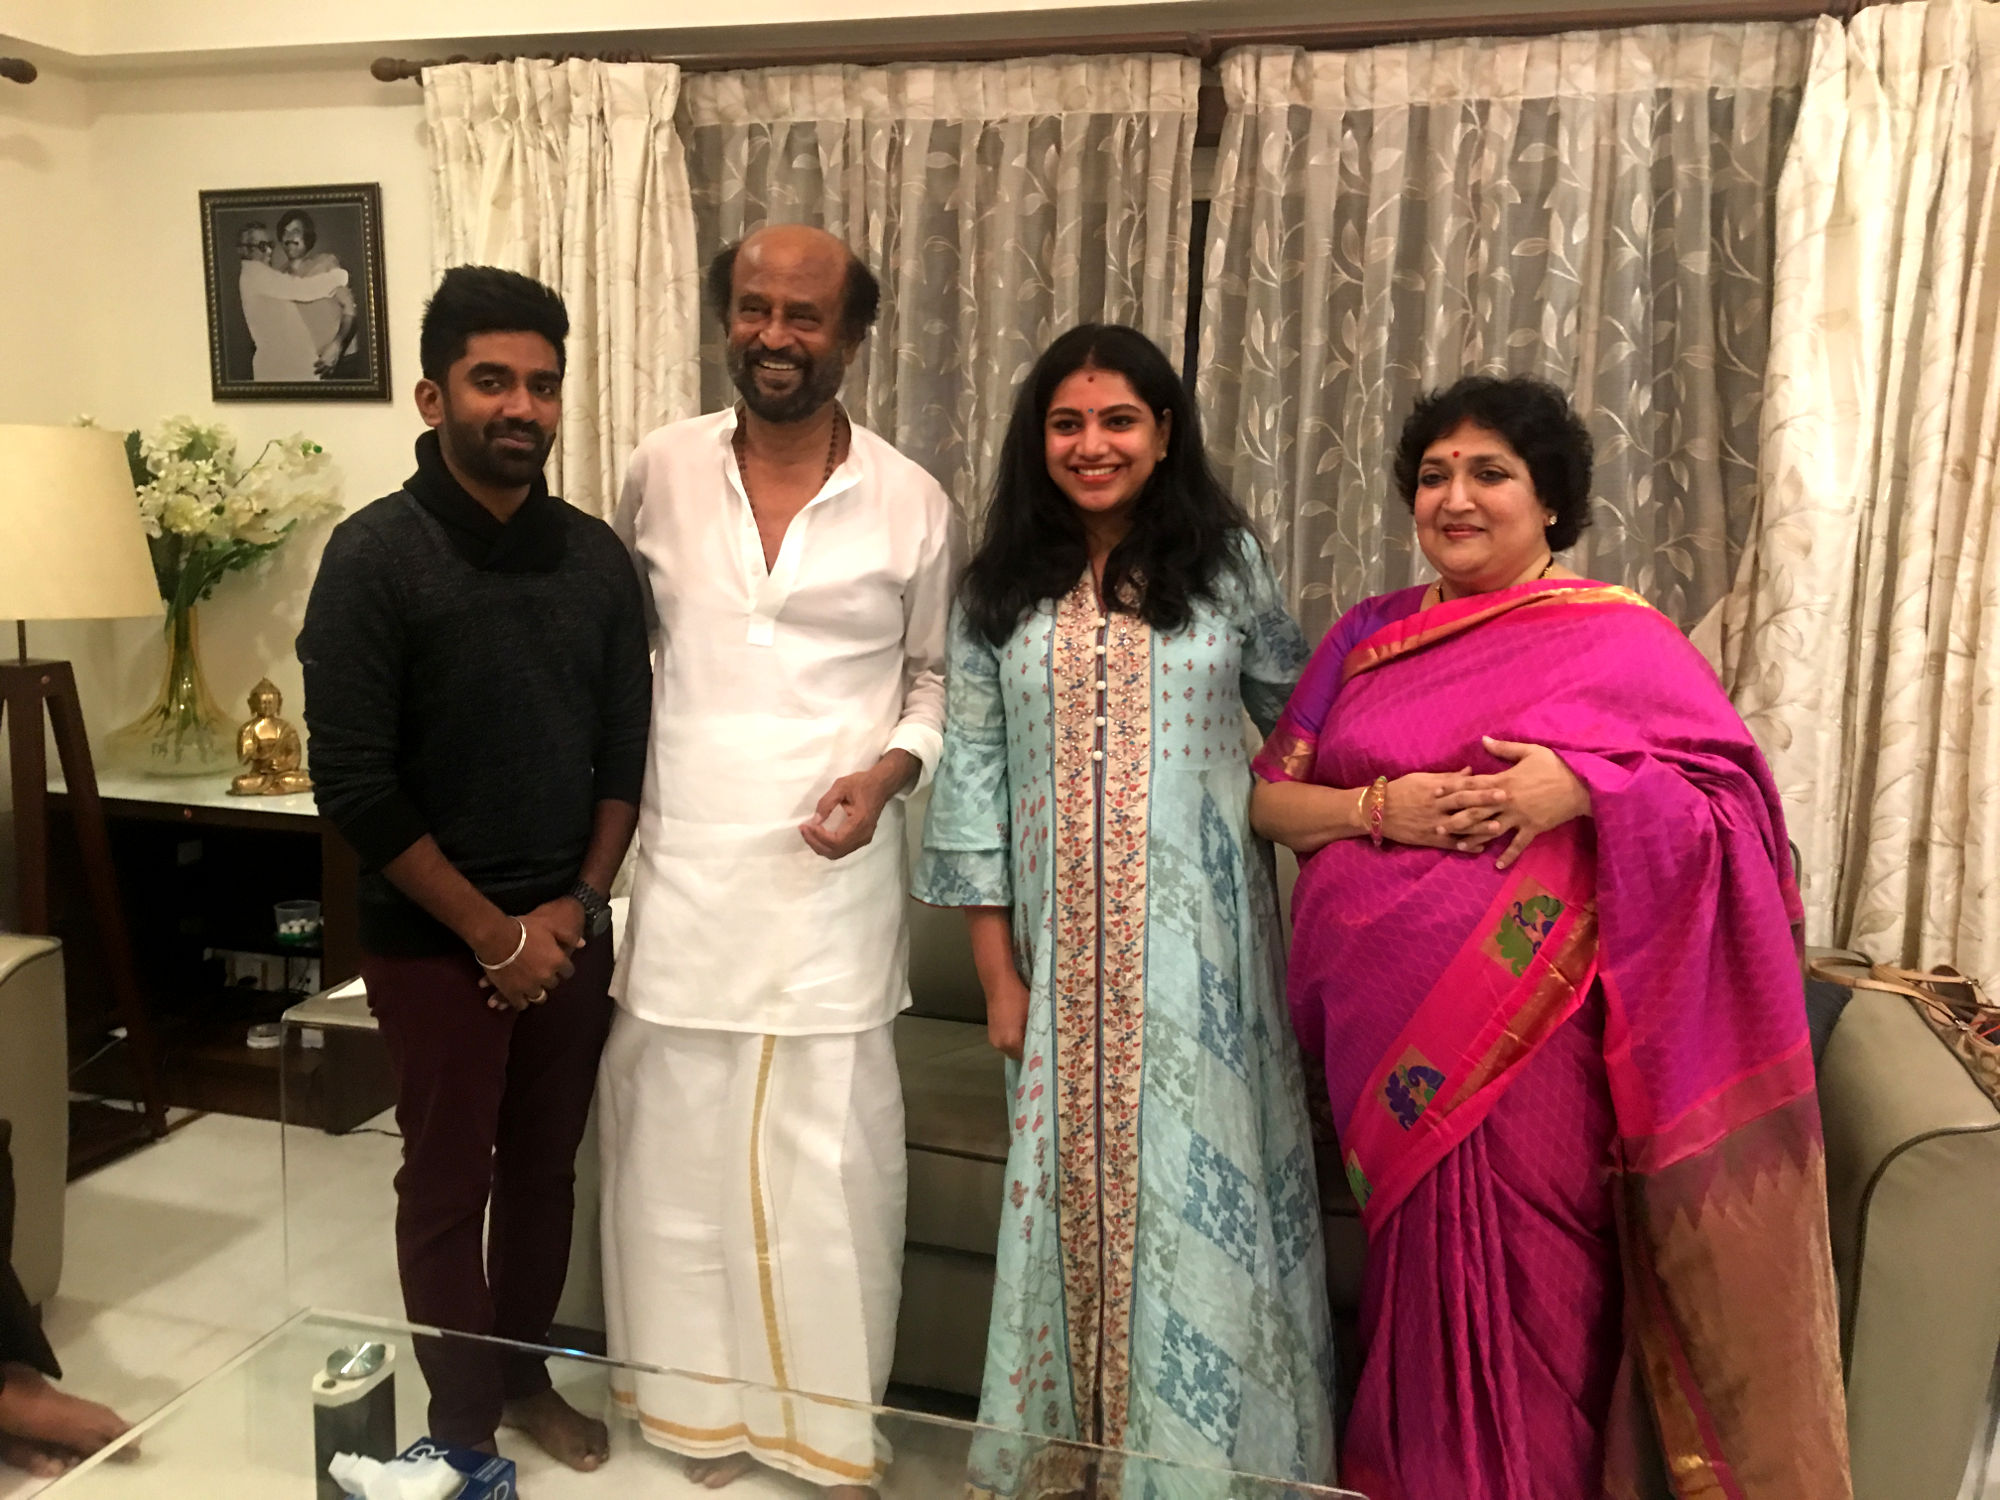 Music director Dharan's unforgettable birthday gift of meeting Superstar Rajinikanth